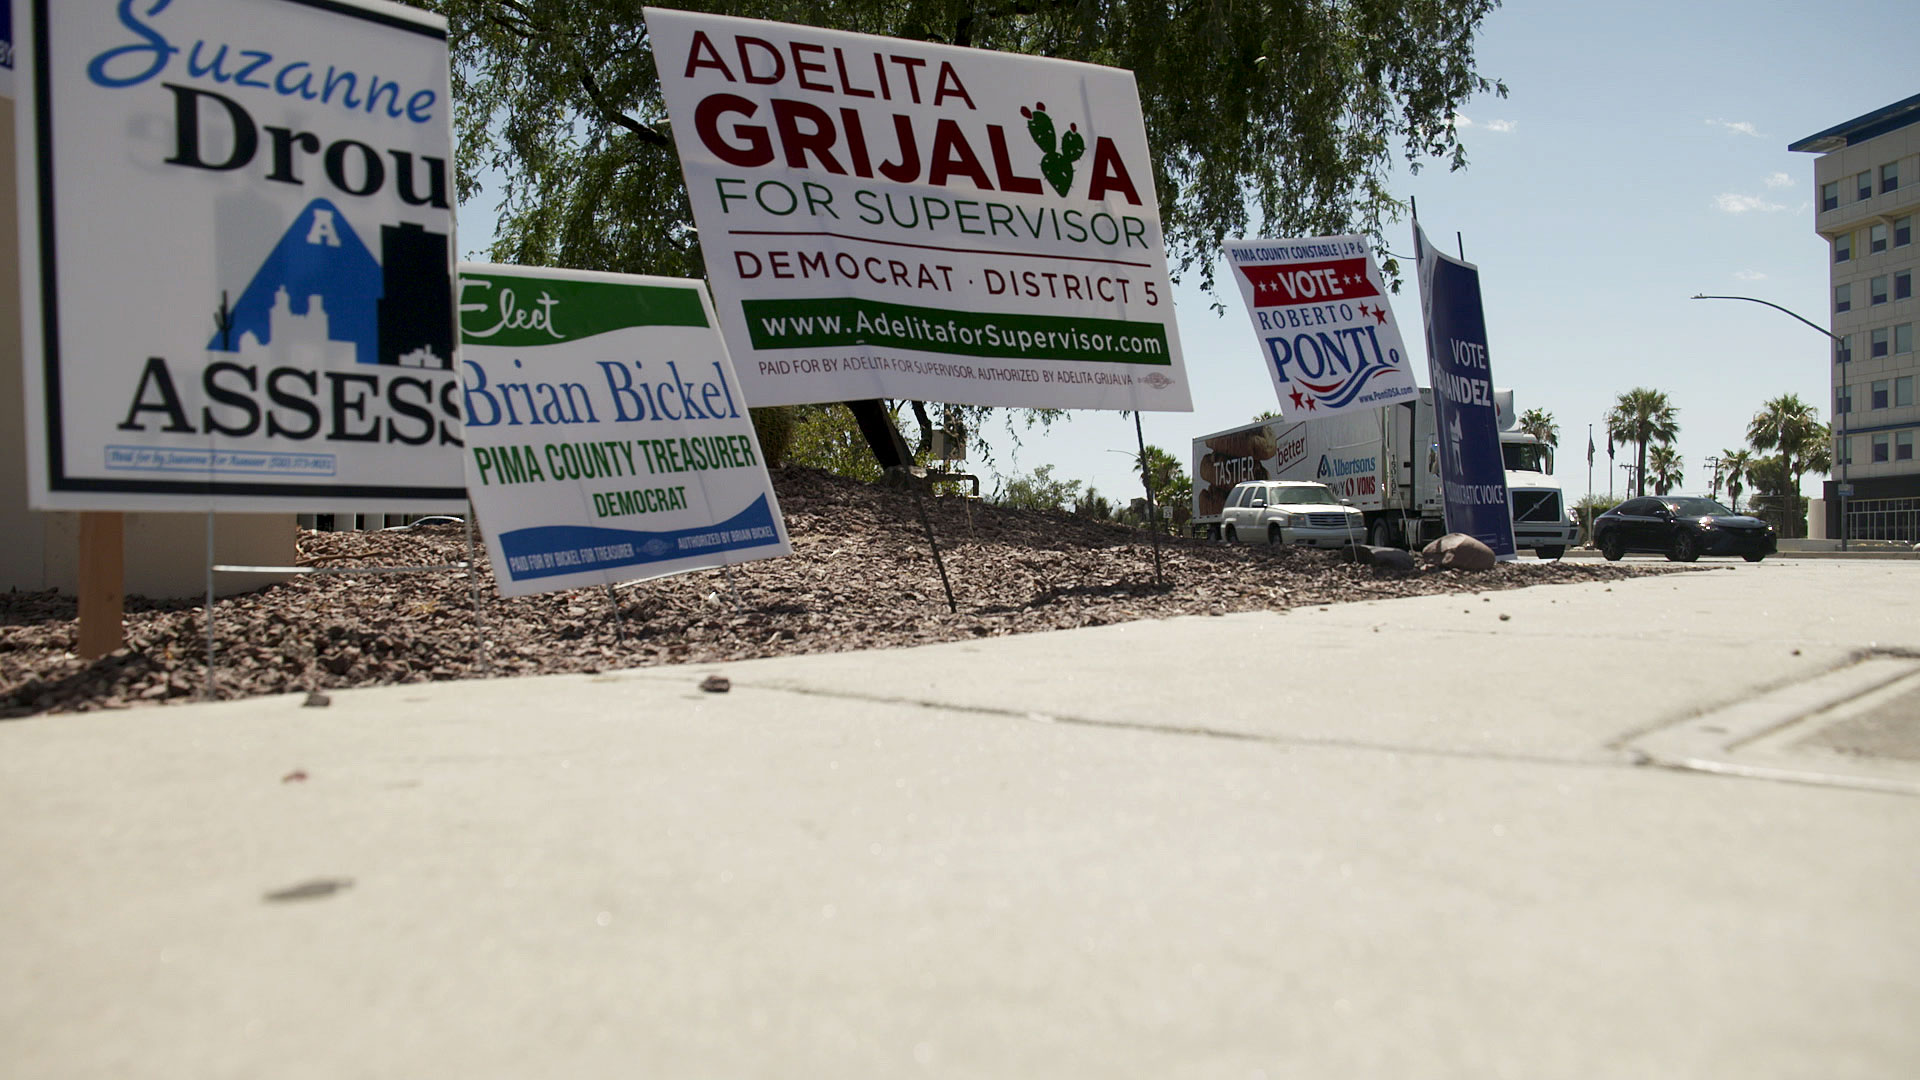 Candidate signs in Tucson posted ahead of the 2020 primary. July 2020.